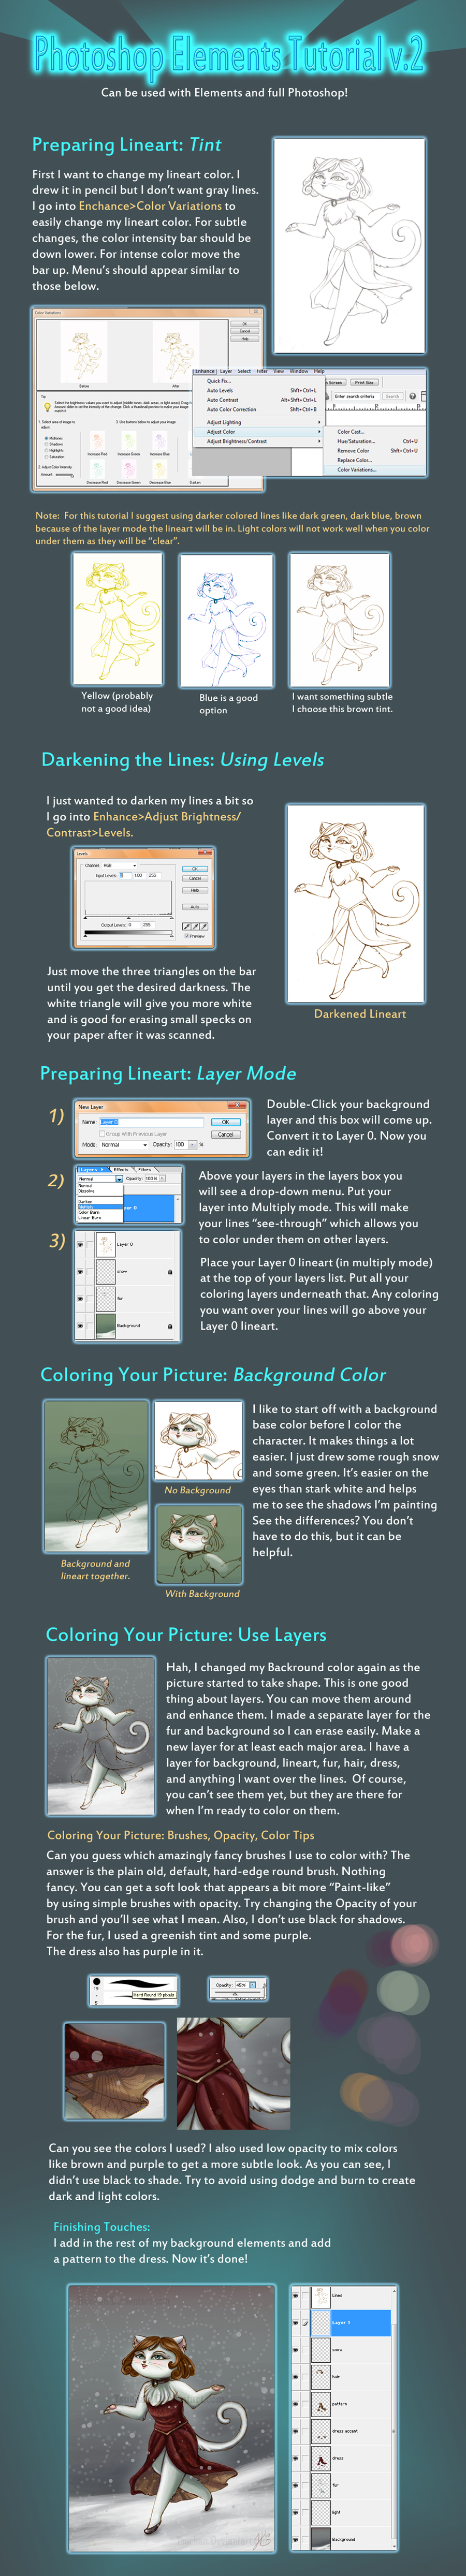 Photoshops Elements Tutorial 2 by Tsuchan